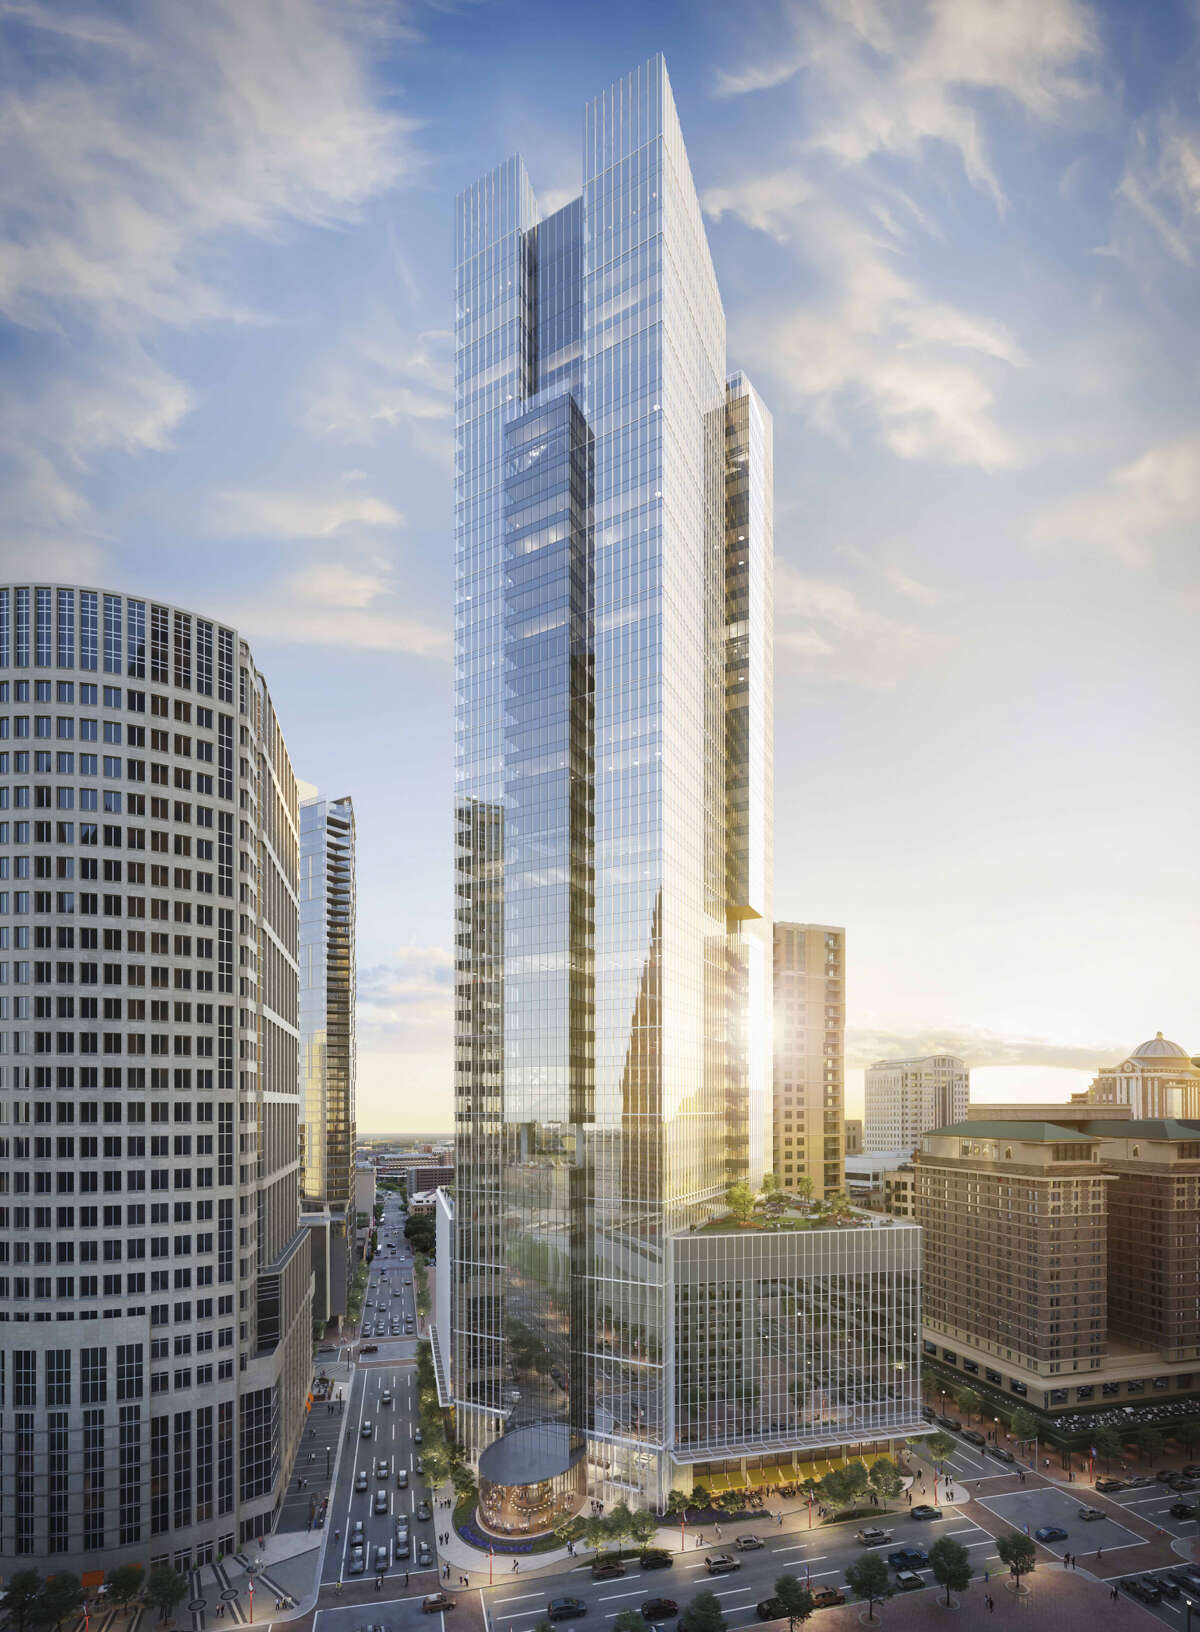 A rendering of Pelli Clarke Pelli's design of Hines' Texas Tower on the 800 block of Texas Avenue.